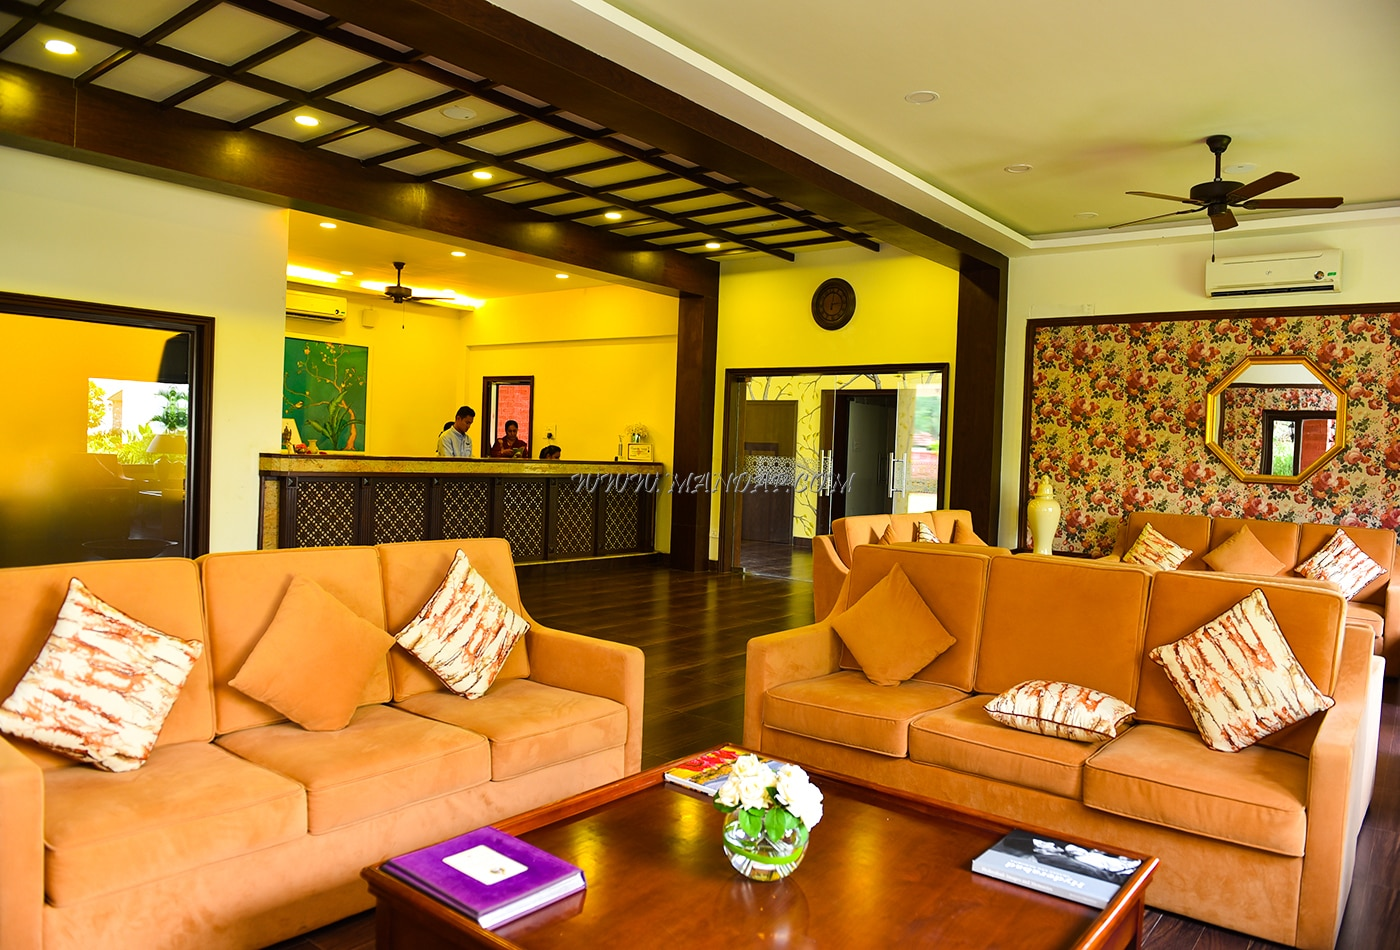 Find the availability of the Trance Greenfields Orchid Hall (A/C) in Moinabad, Hyderabad and avail special offers